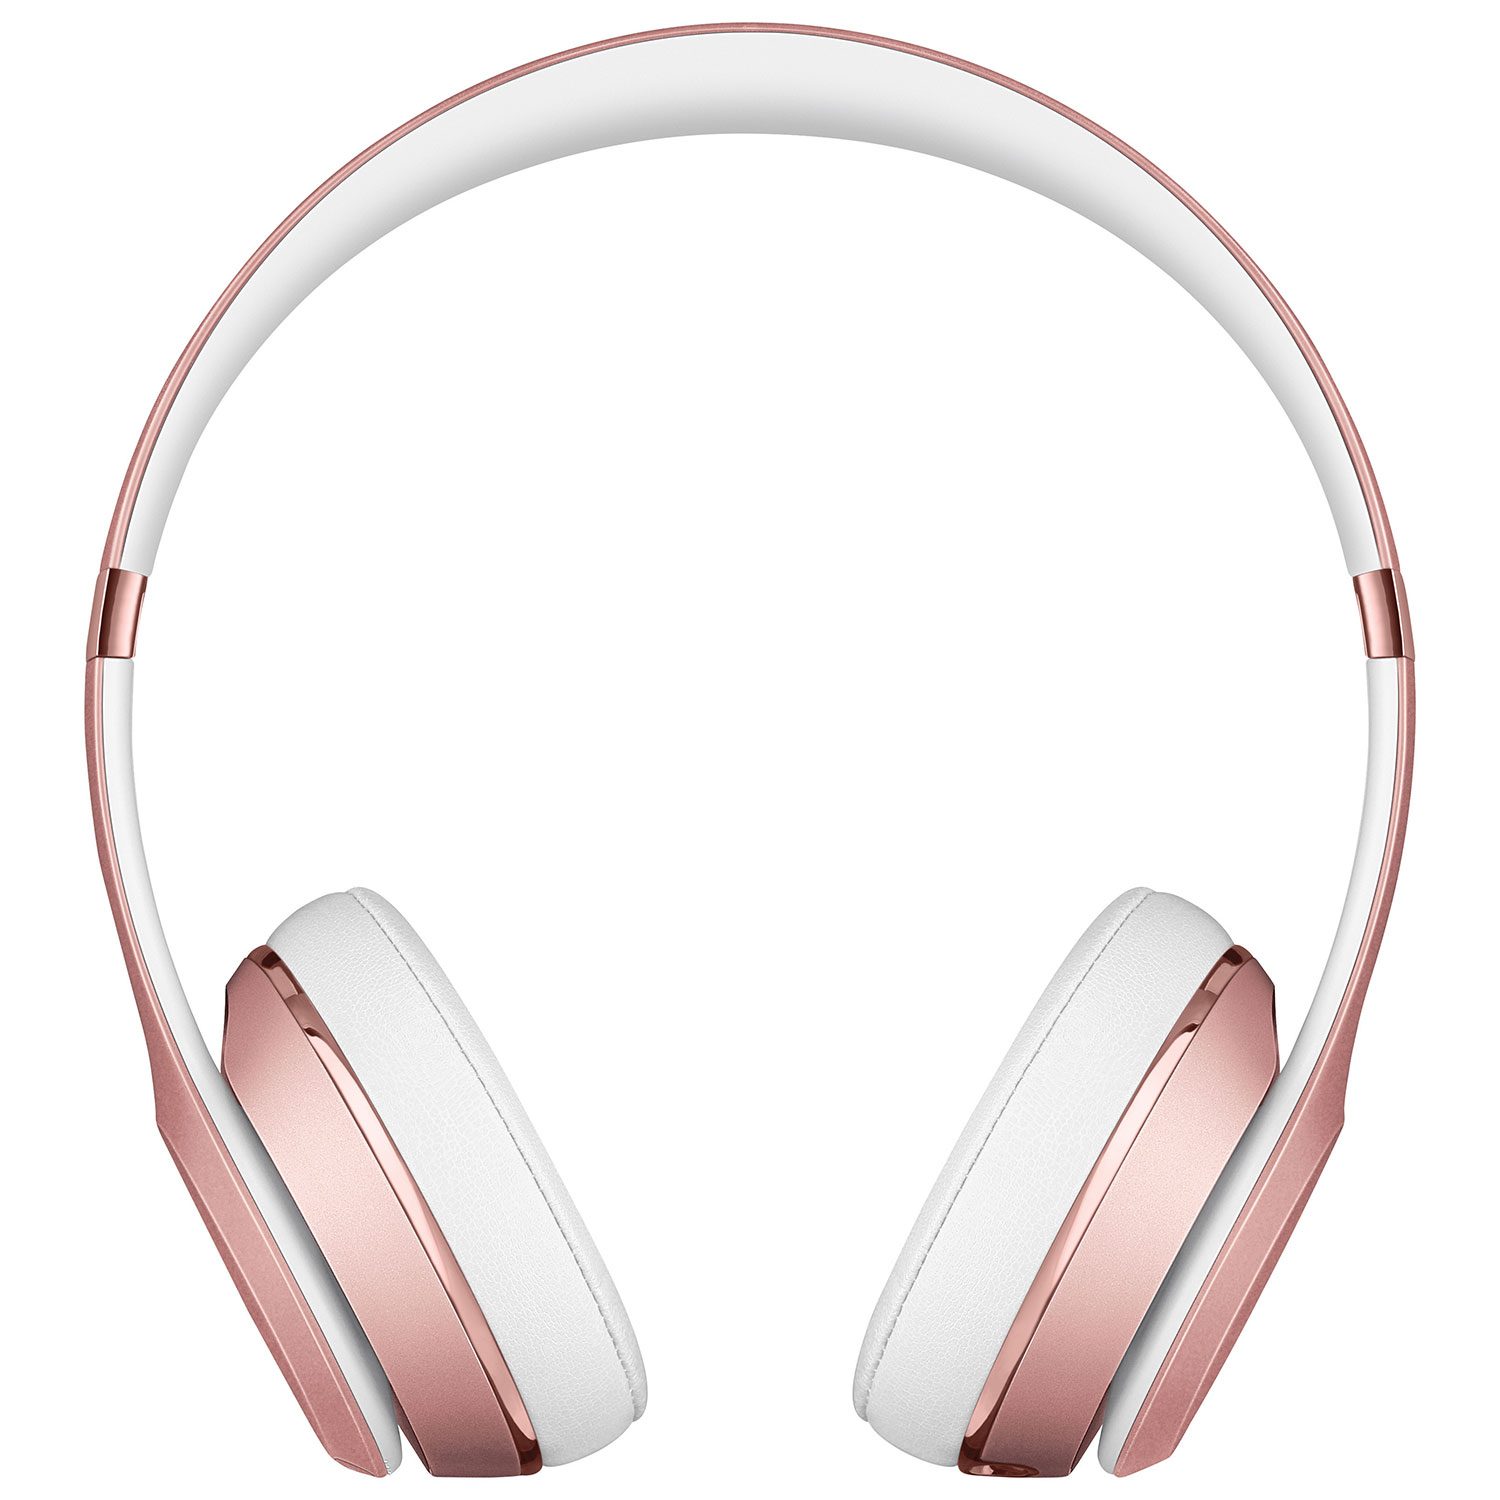 Beats by Dr. Dre Solo3 On-Ear Sound Isolating Bluetooth Headphones - Rose  Gold   On-Ear Headphones - Best Buy Canada 1e543b97251b0